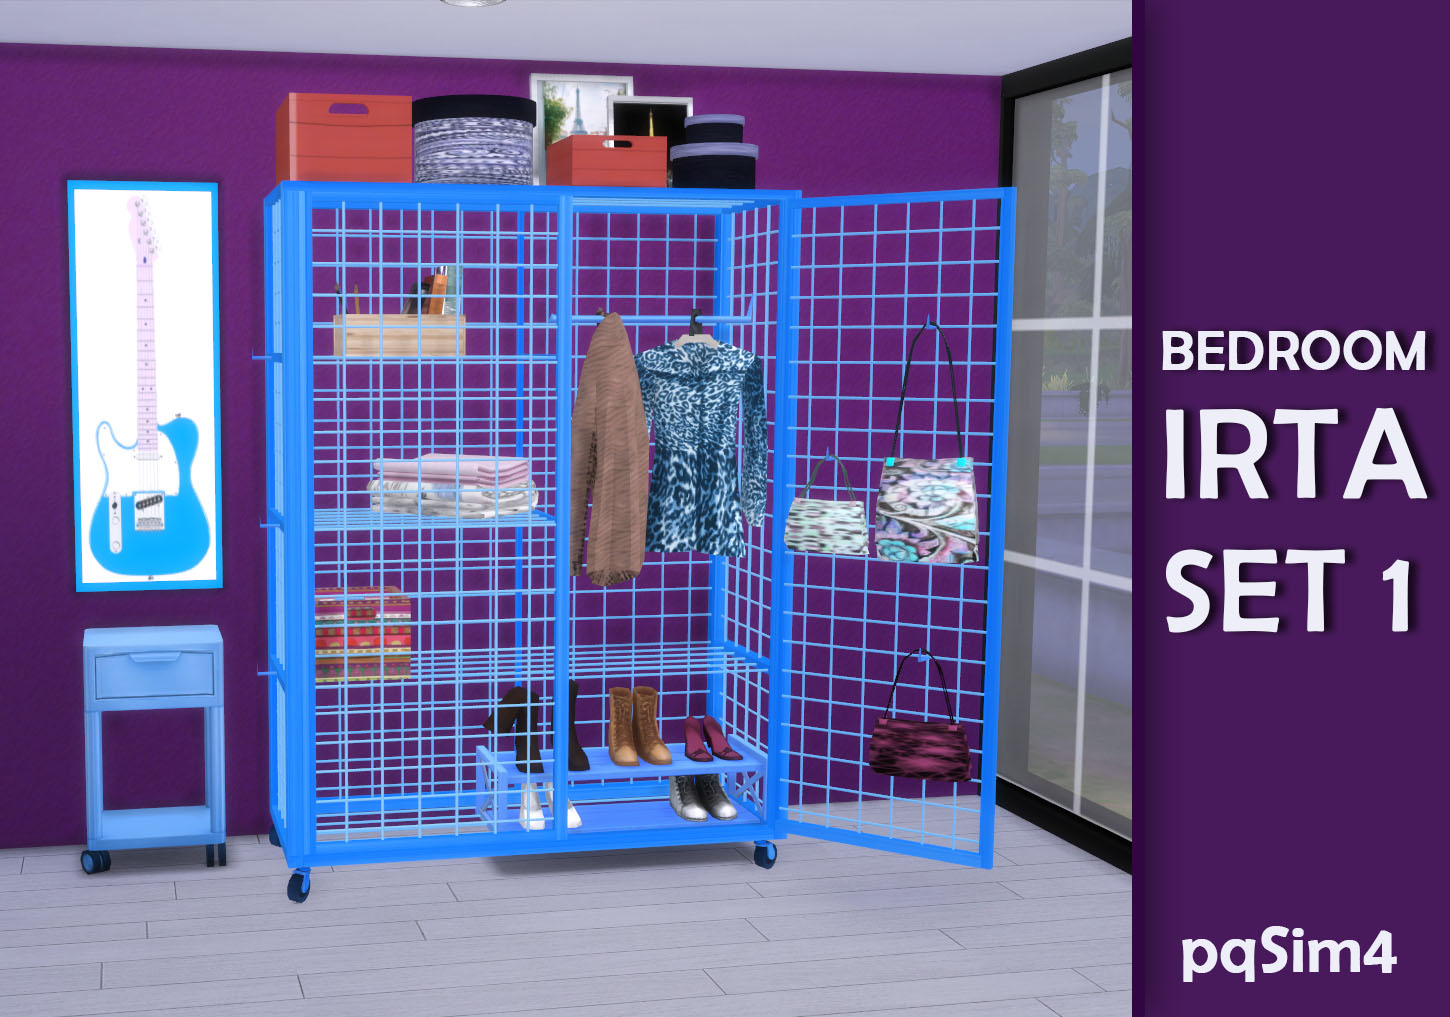 Dormitorio Irta Set 1 by pqsim4